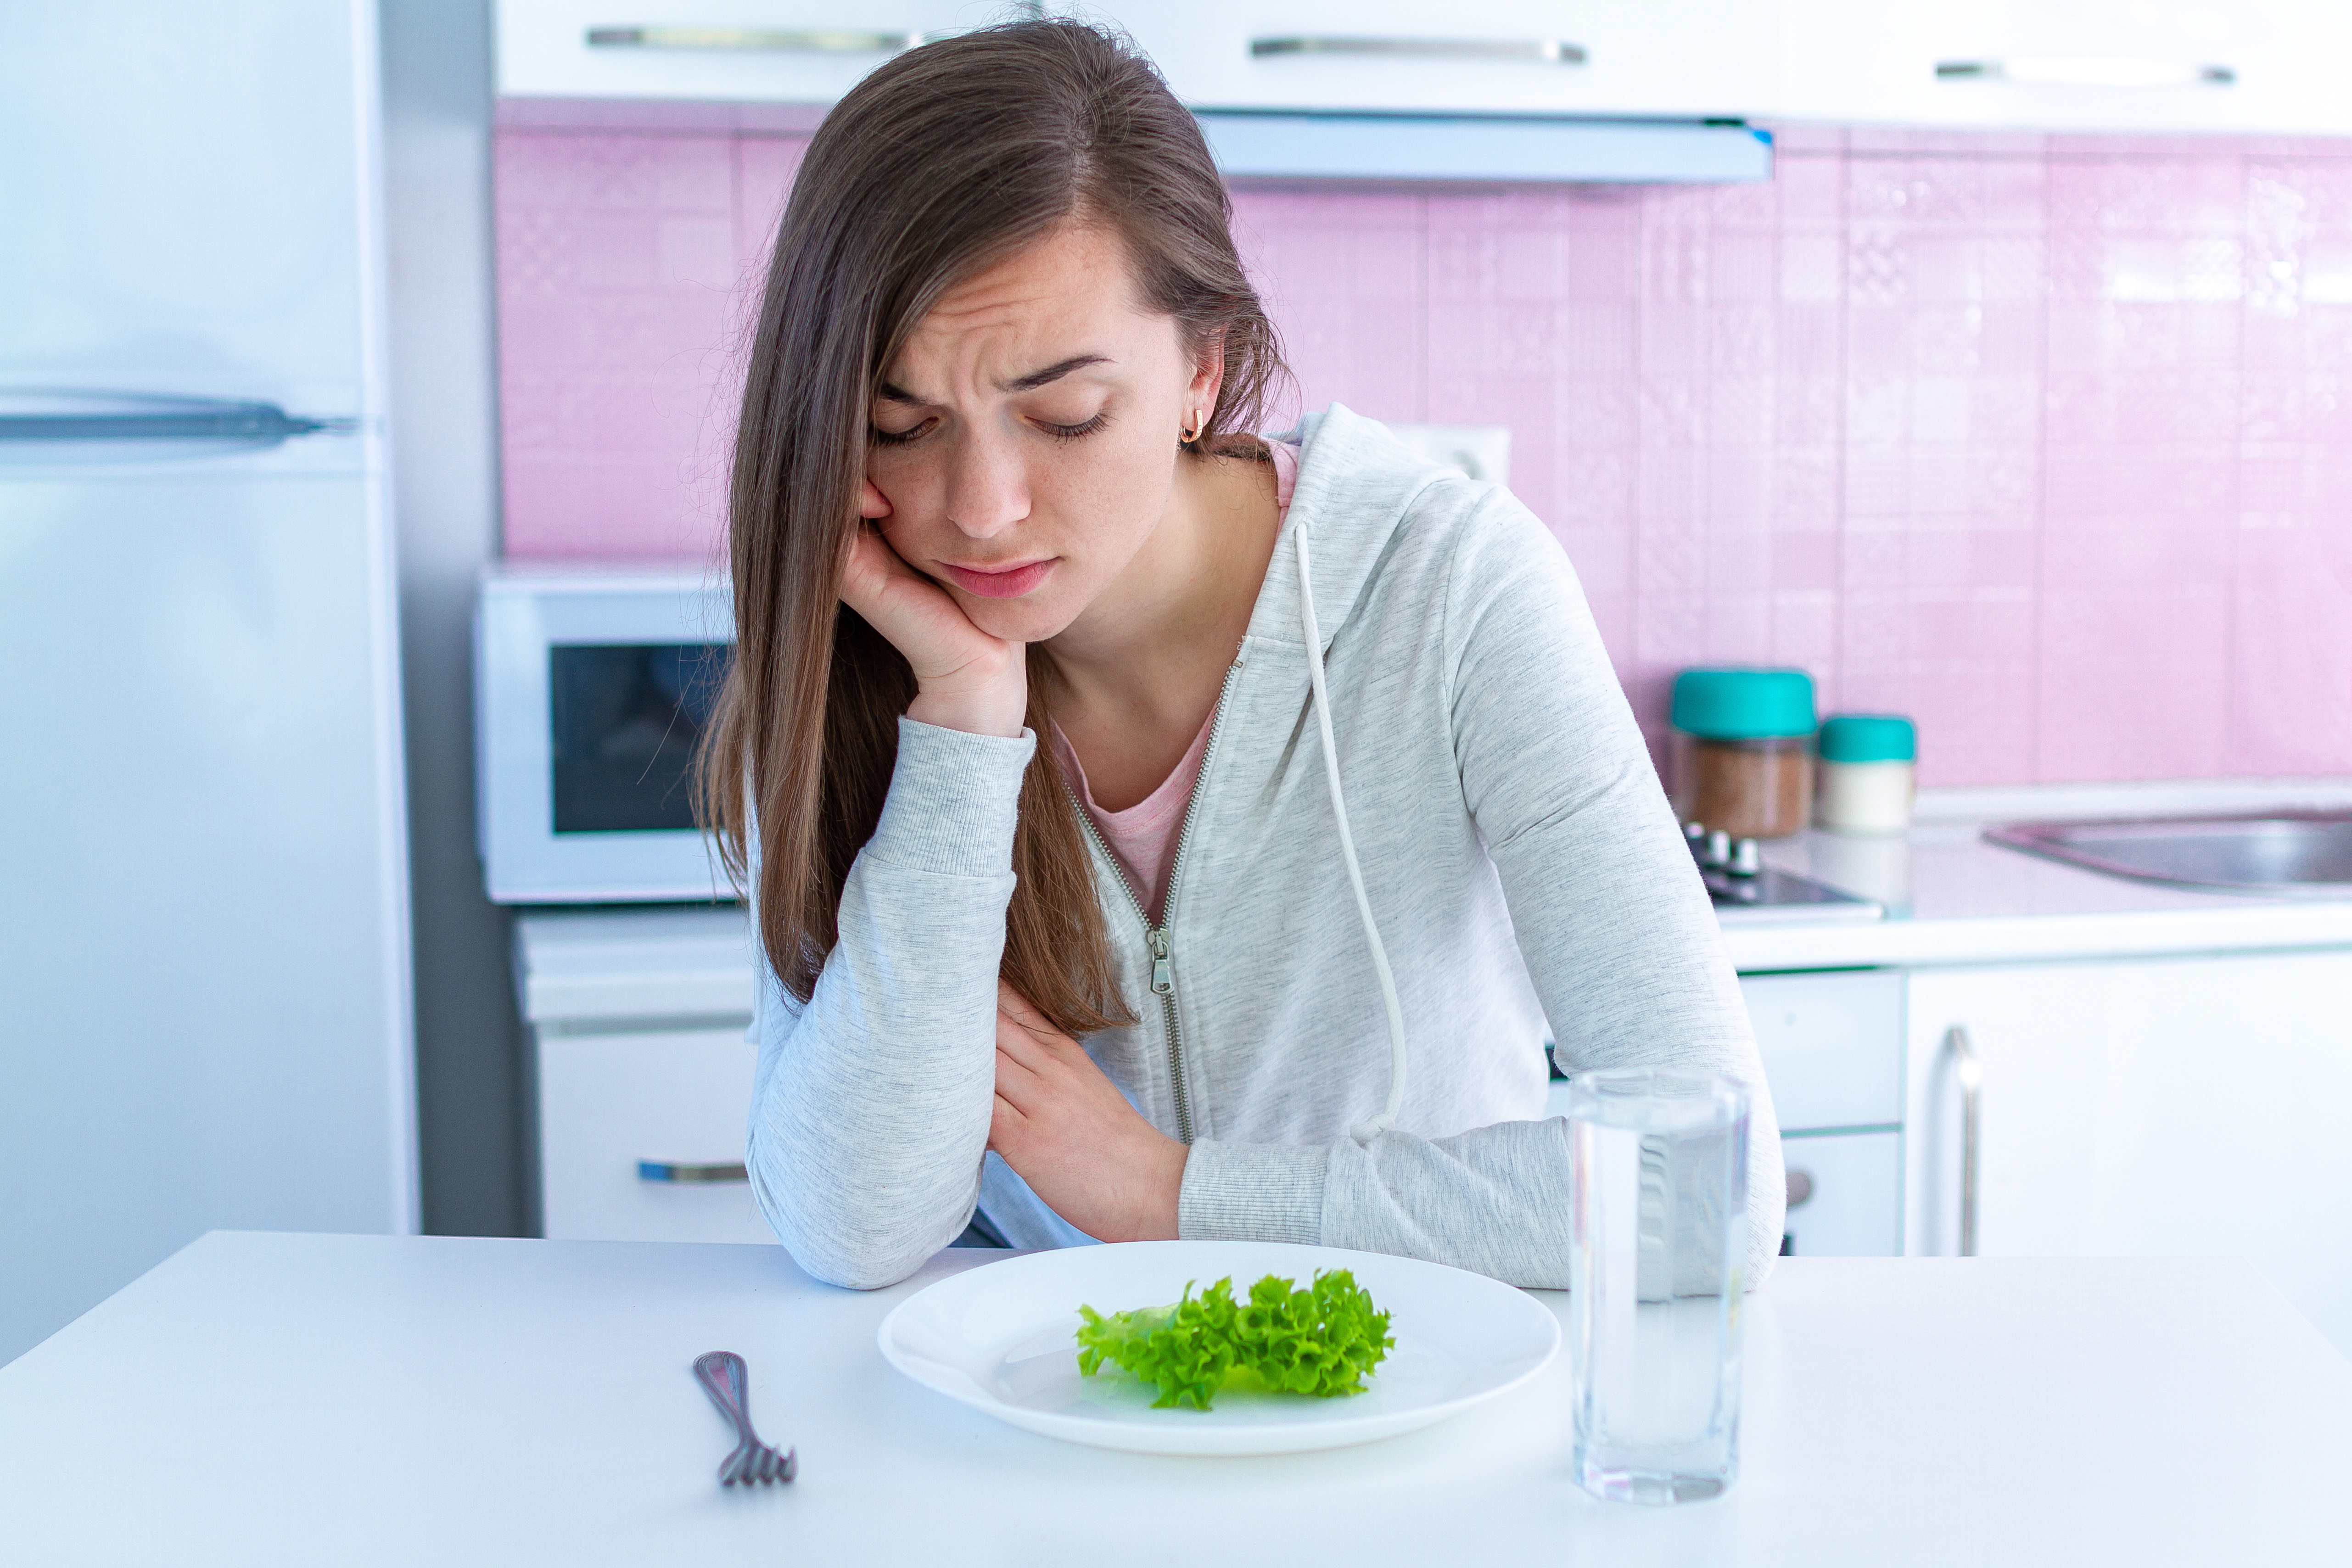 Sad unhappy young woman is tired of dieting and not wanting to eat organic, clean healthy food